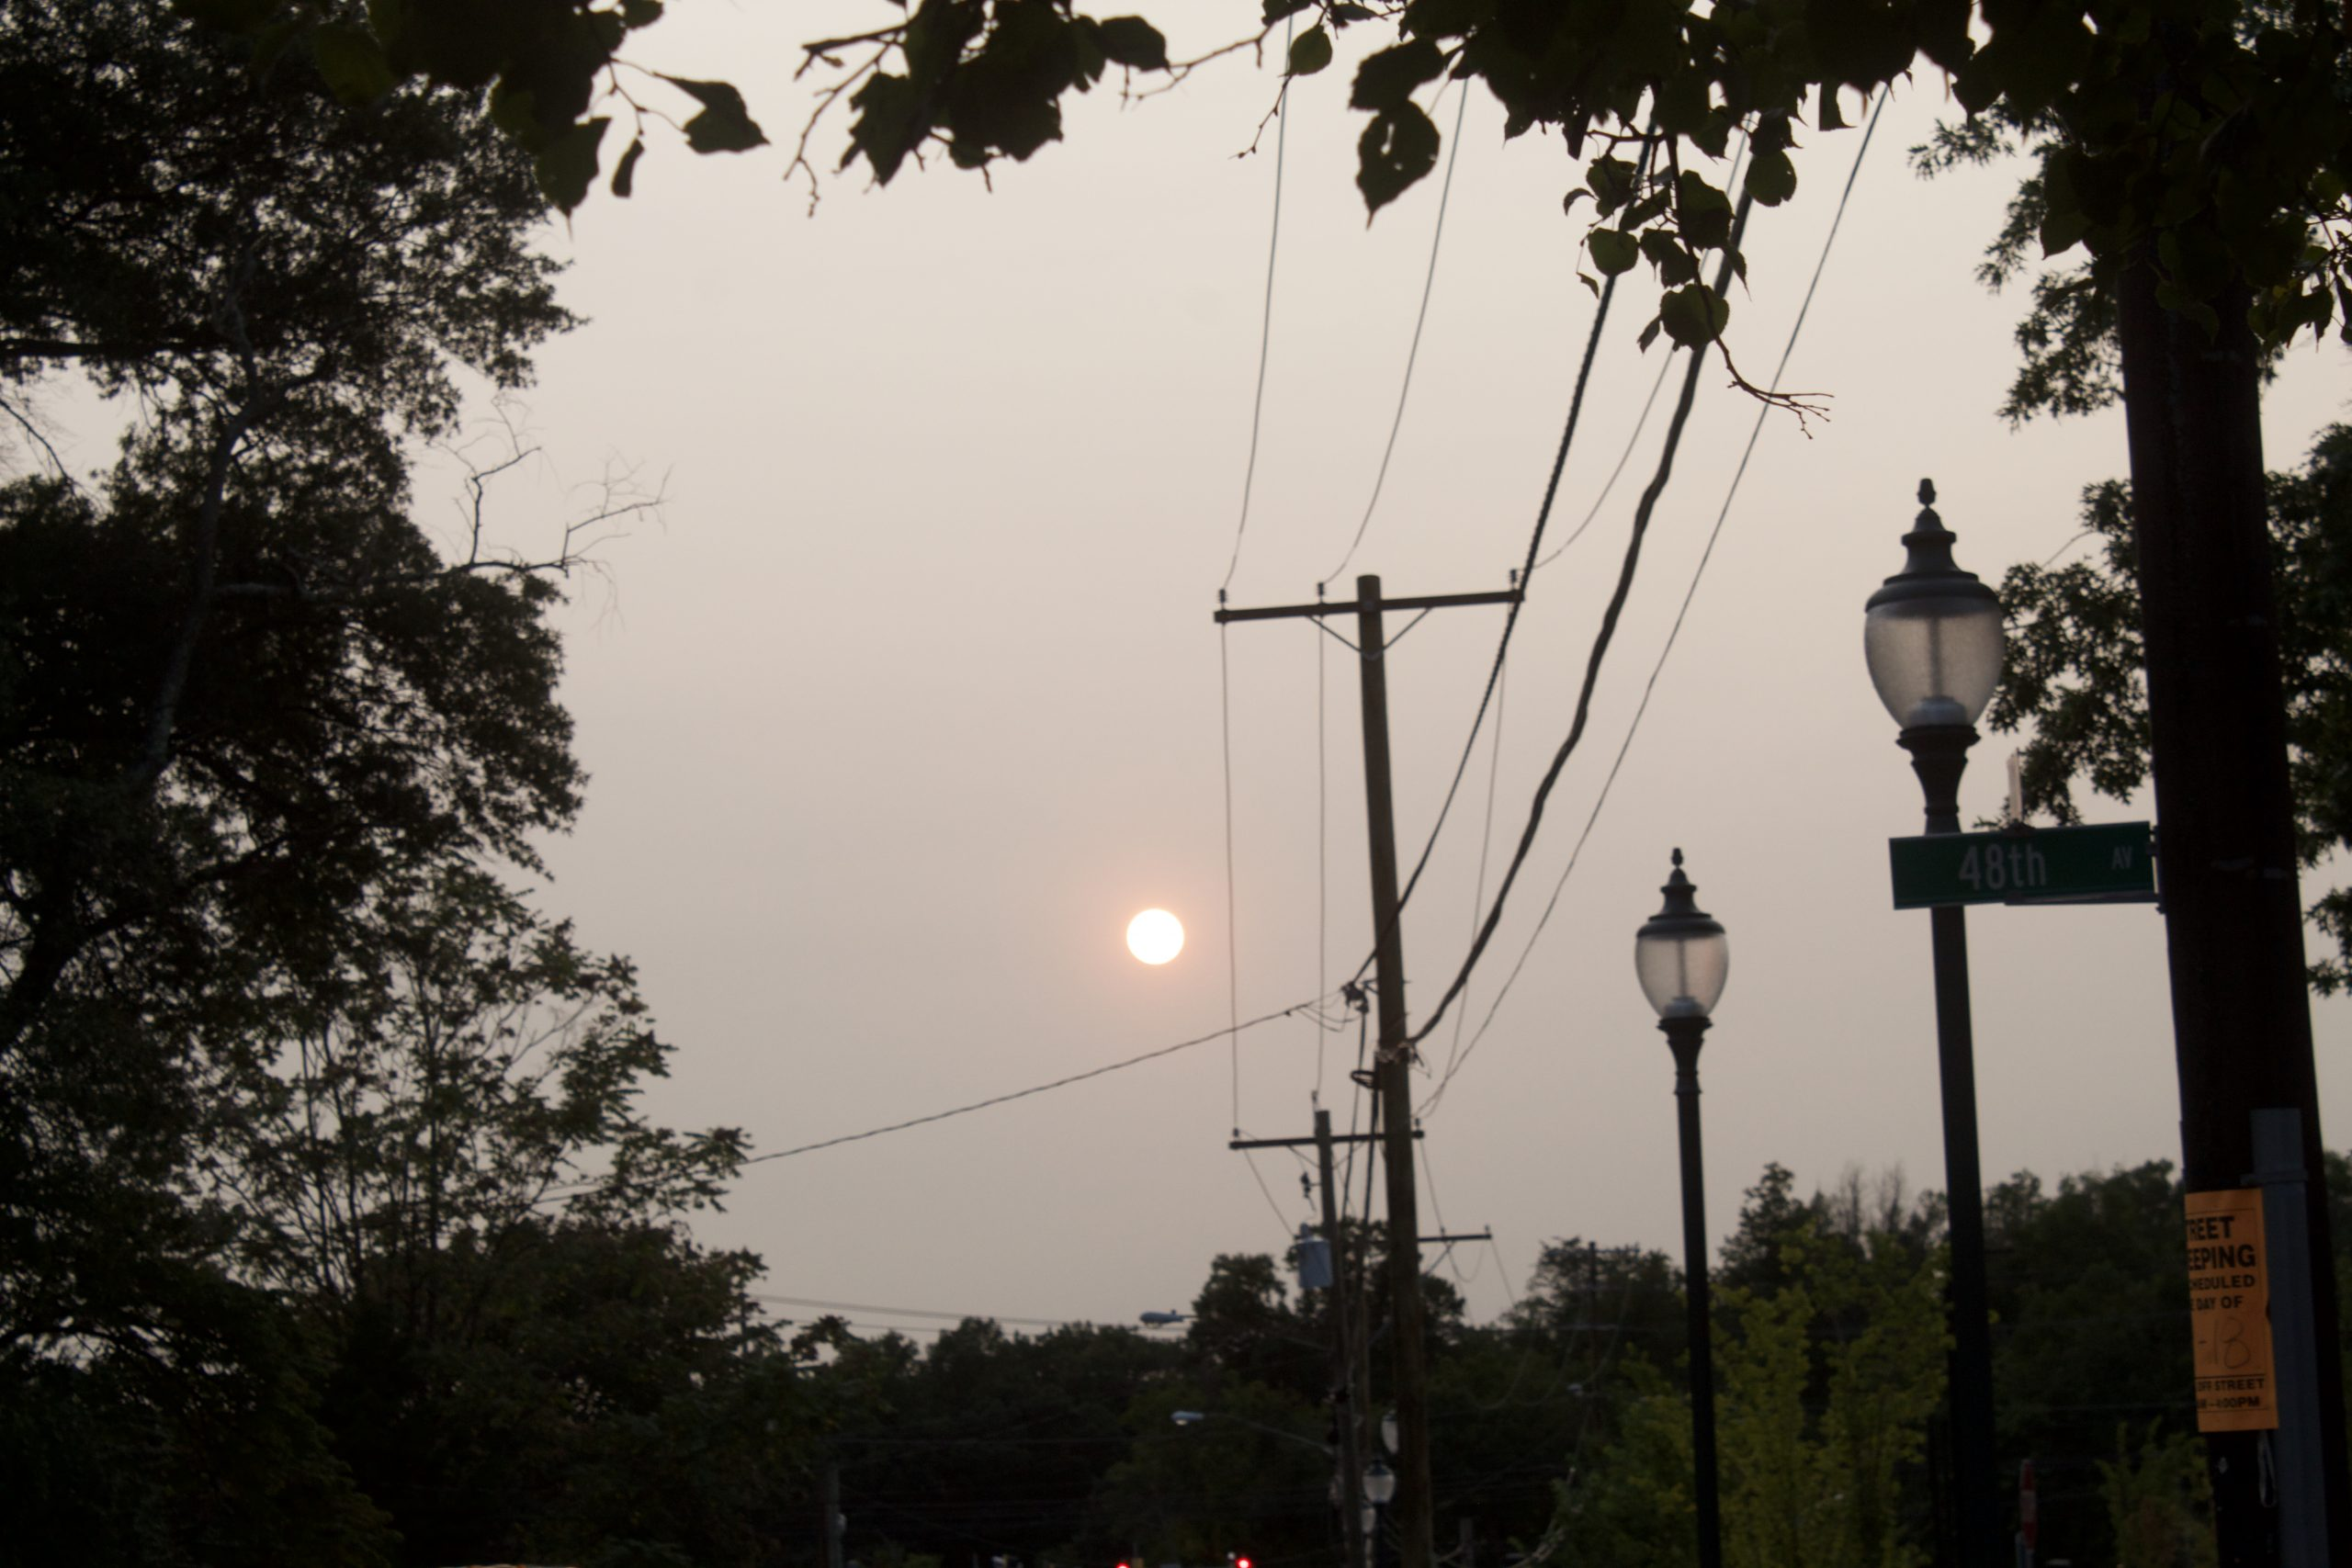 WASHINGTON D.C., The sun was obscured by smoke from the West Coast Tuesday evening in the D.C. area. Capital News Service Photo by Aneurin Canham-Clyne